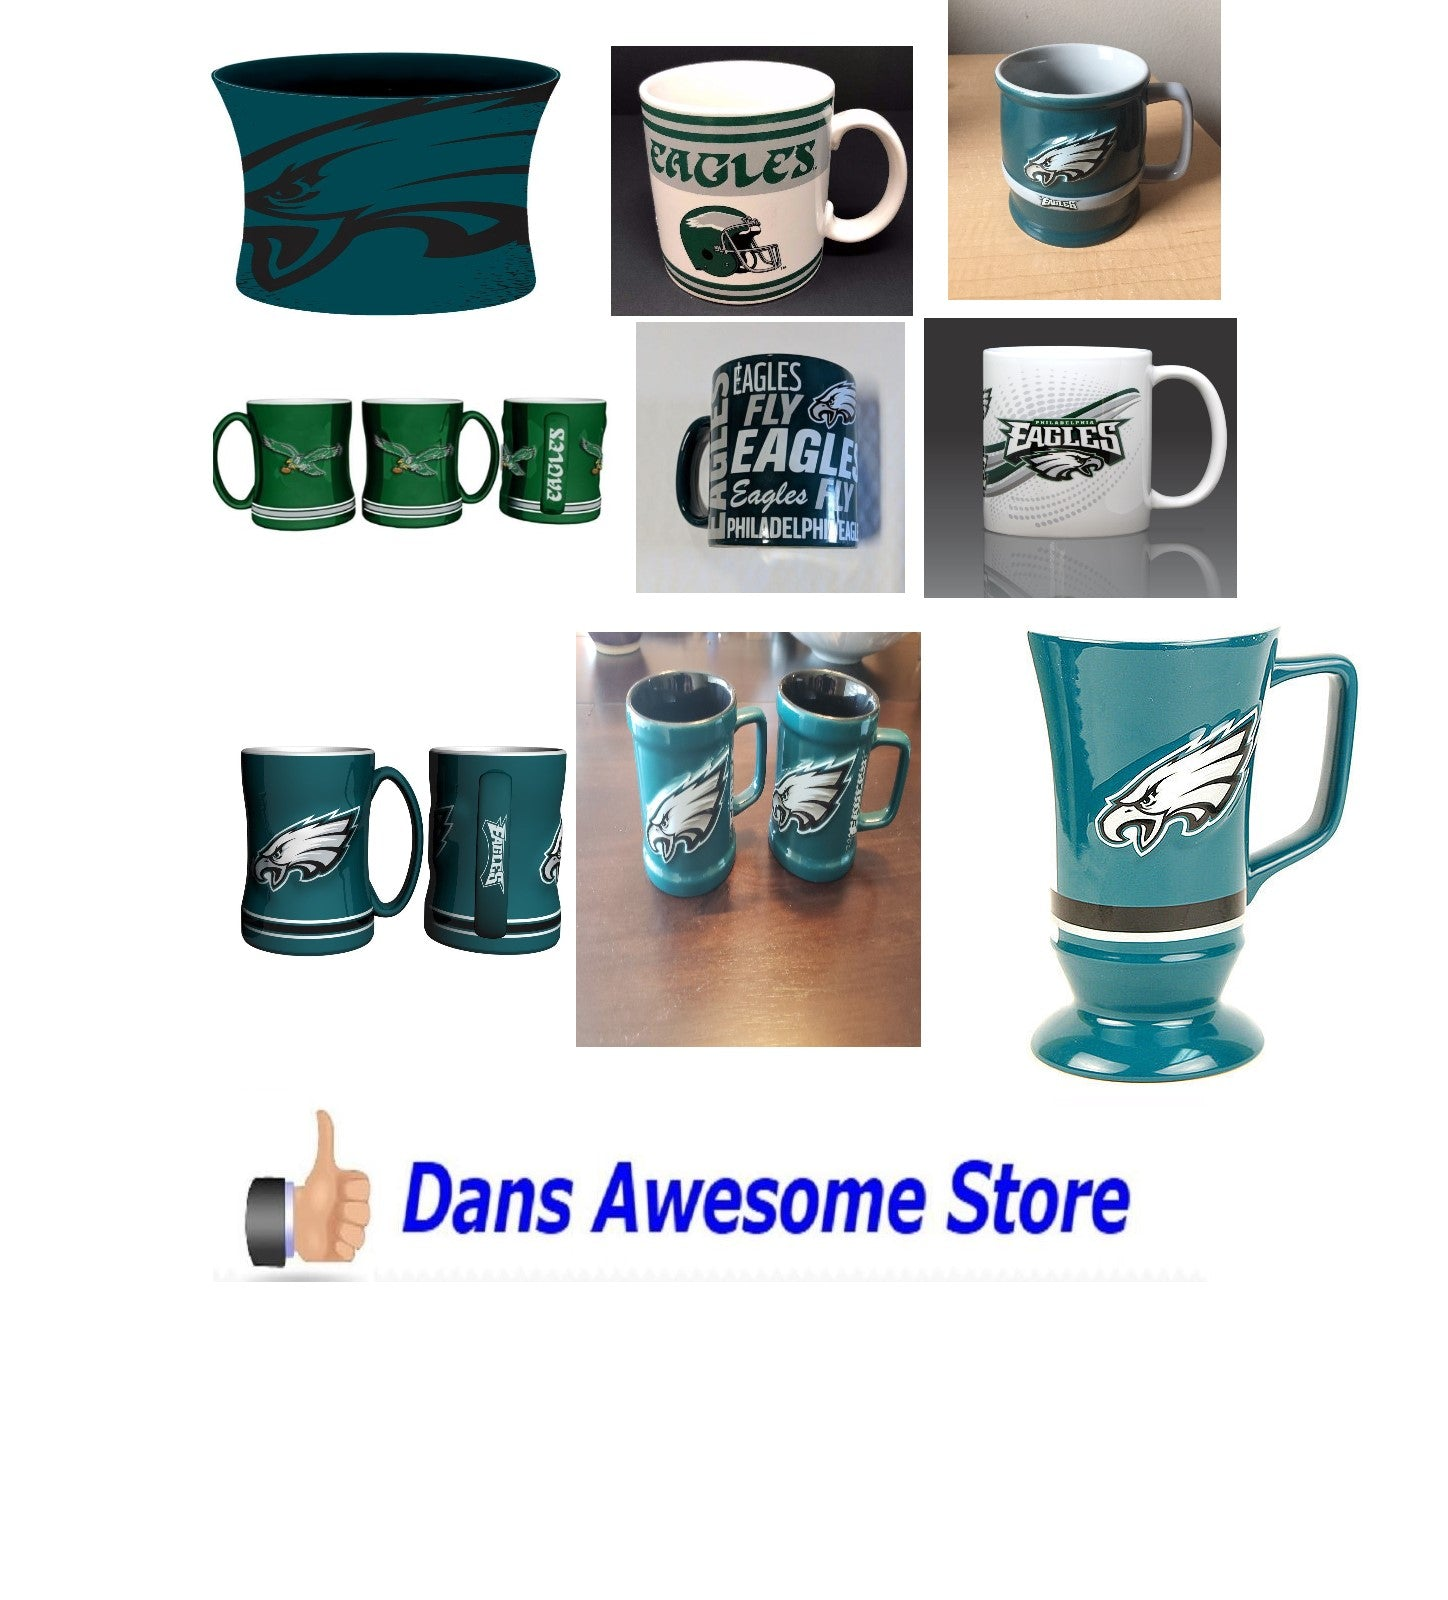 Philadelphia Eagles Coffee Mug - Dans Awesome Store